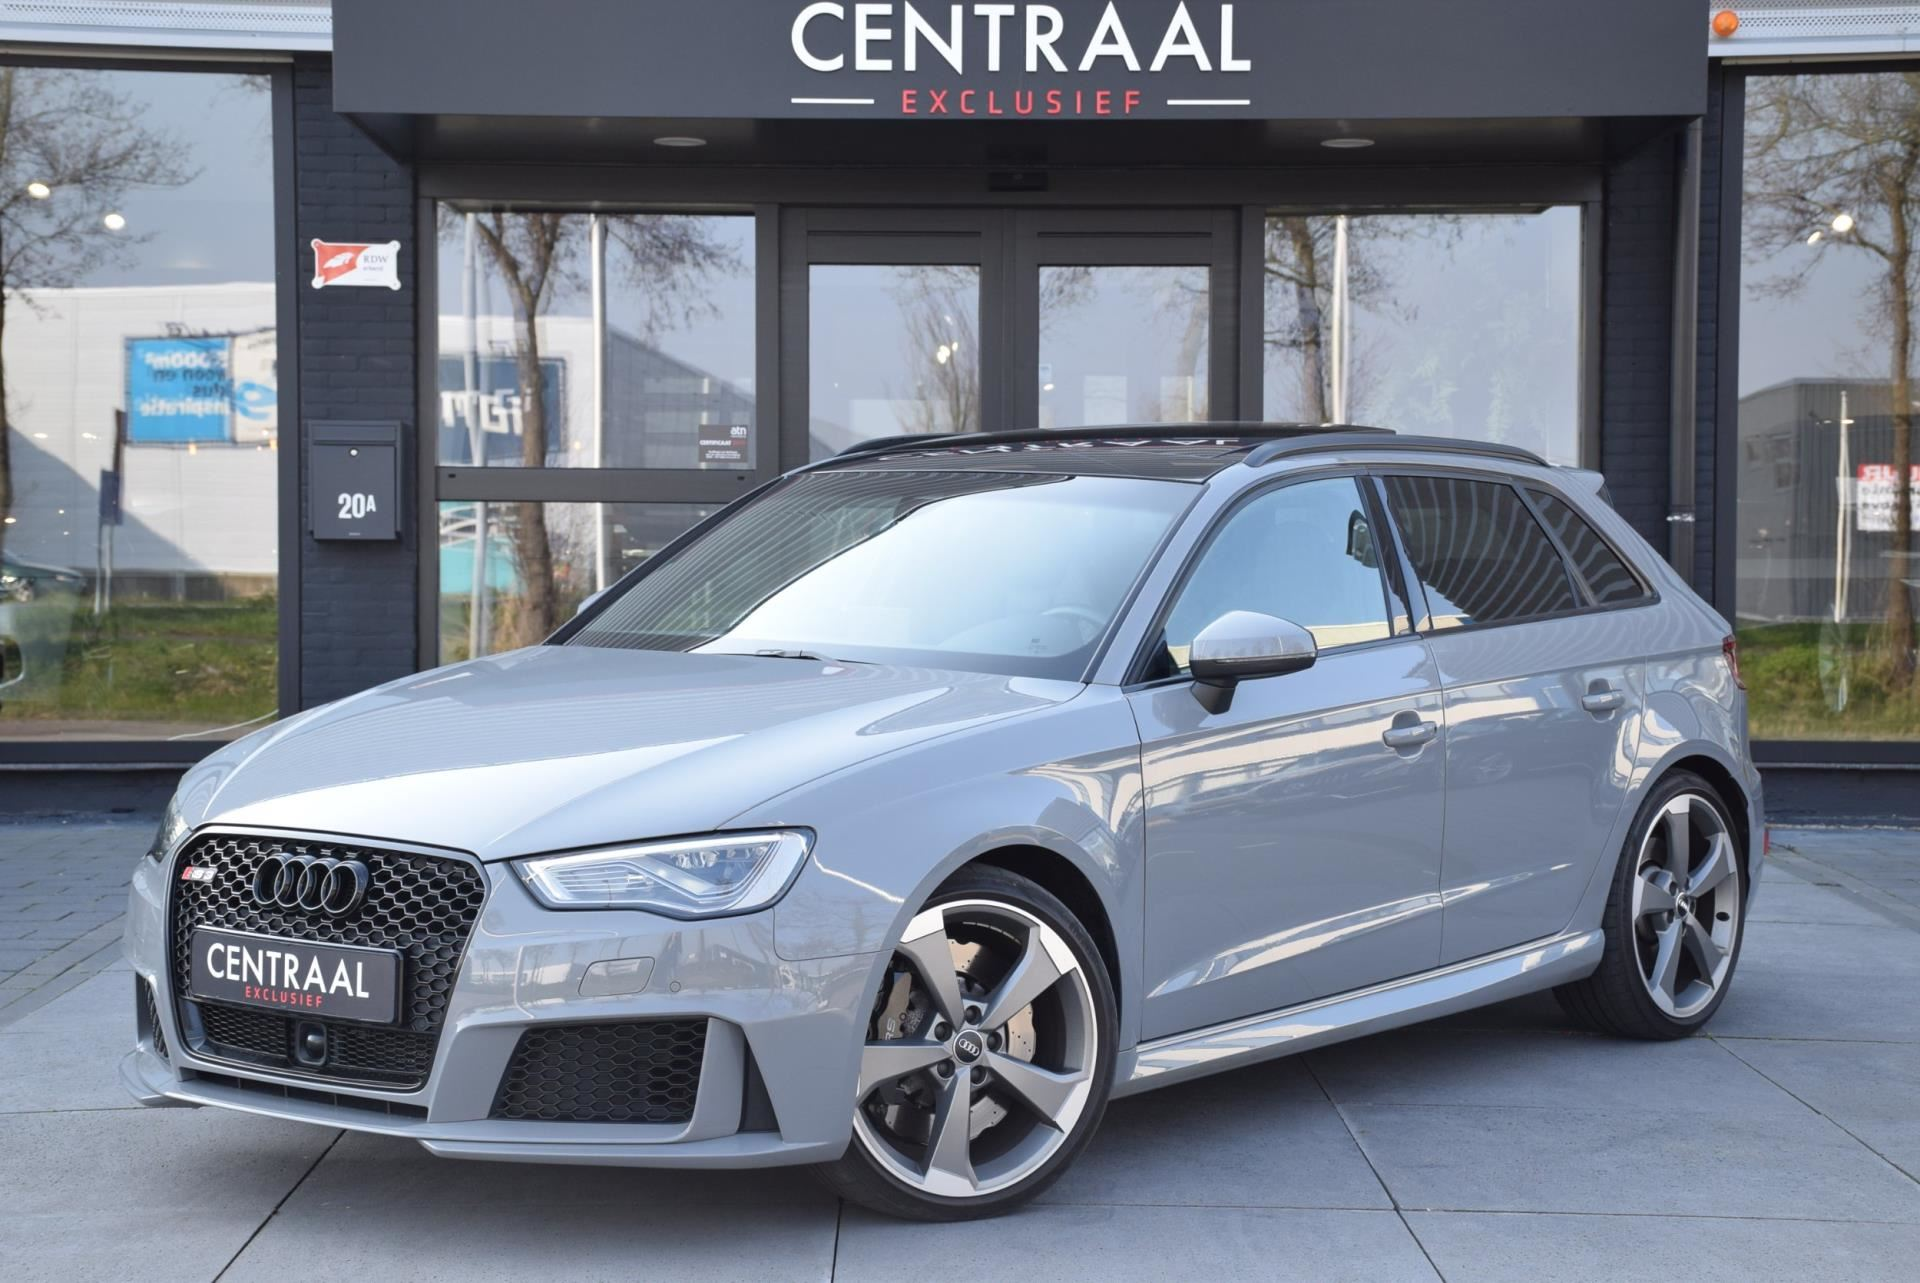 Audi RS3 occasion - Centraal Exclusief B.V.